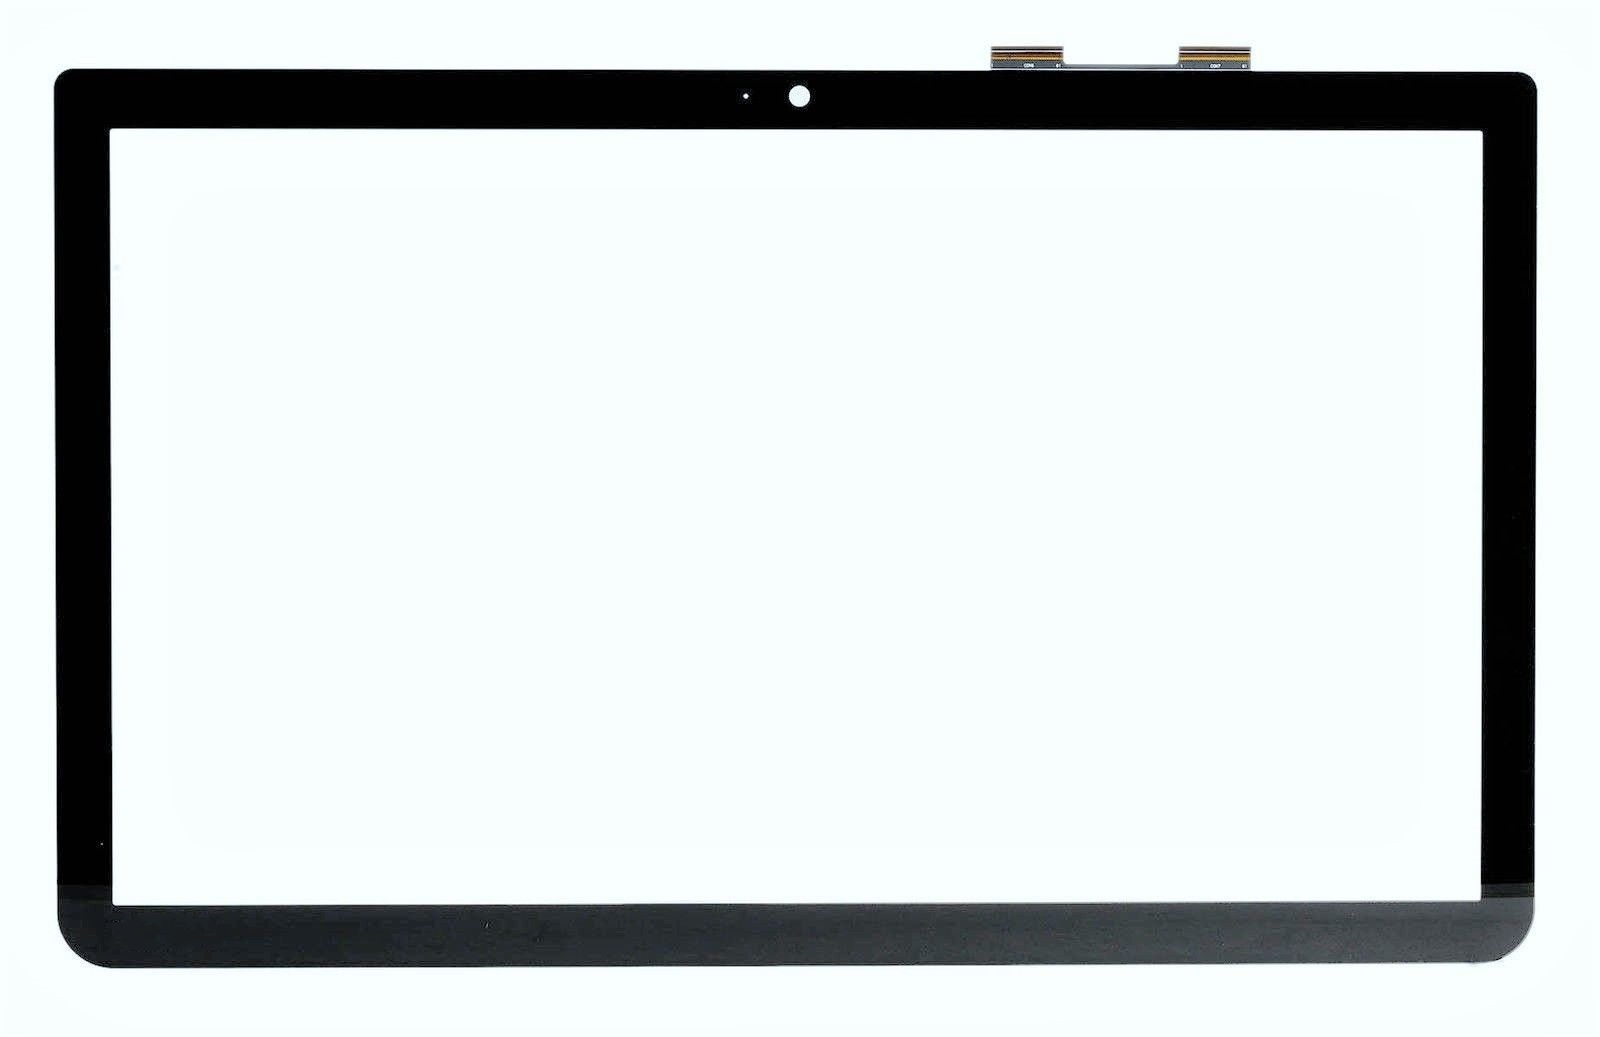 NEW For Toshiba Satellite L55T-B5128 L55T-B 15.6 OEM Touch Screen Glass Digitizer , L55T-B SeriesNEW For Toshiba Satellite L55T-B5128 L55T-B 15.6 OEM Touch Screen Glass Digitizer , L55T-B Series